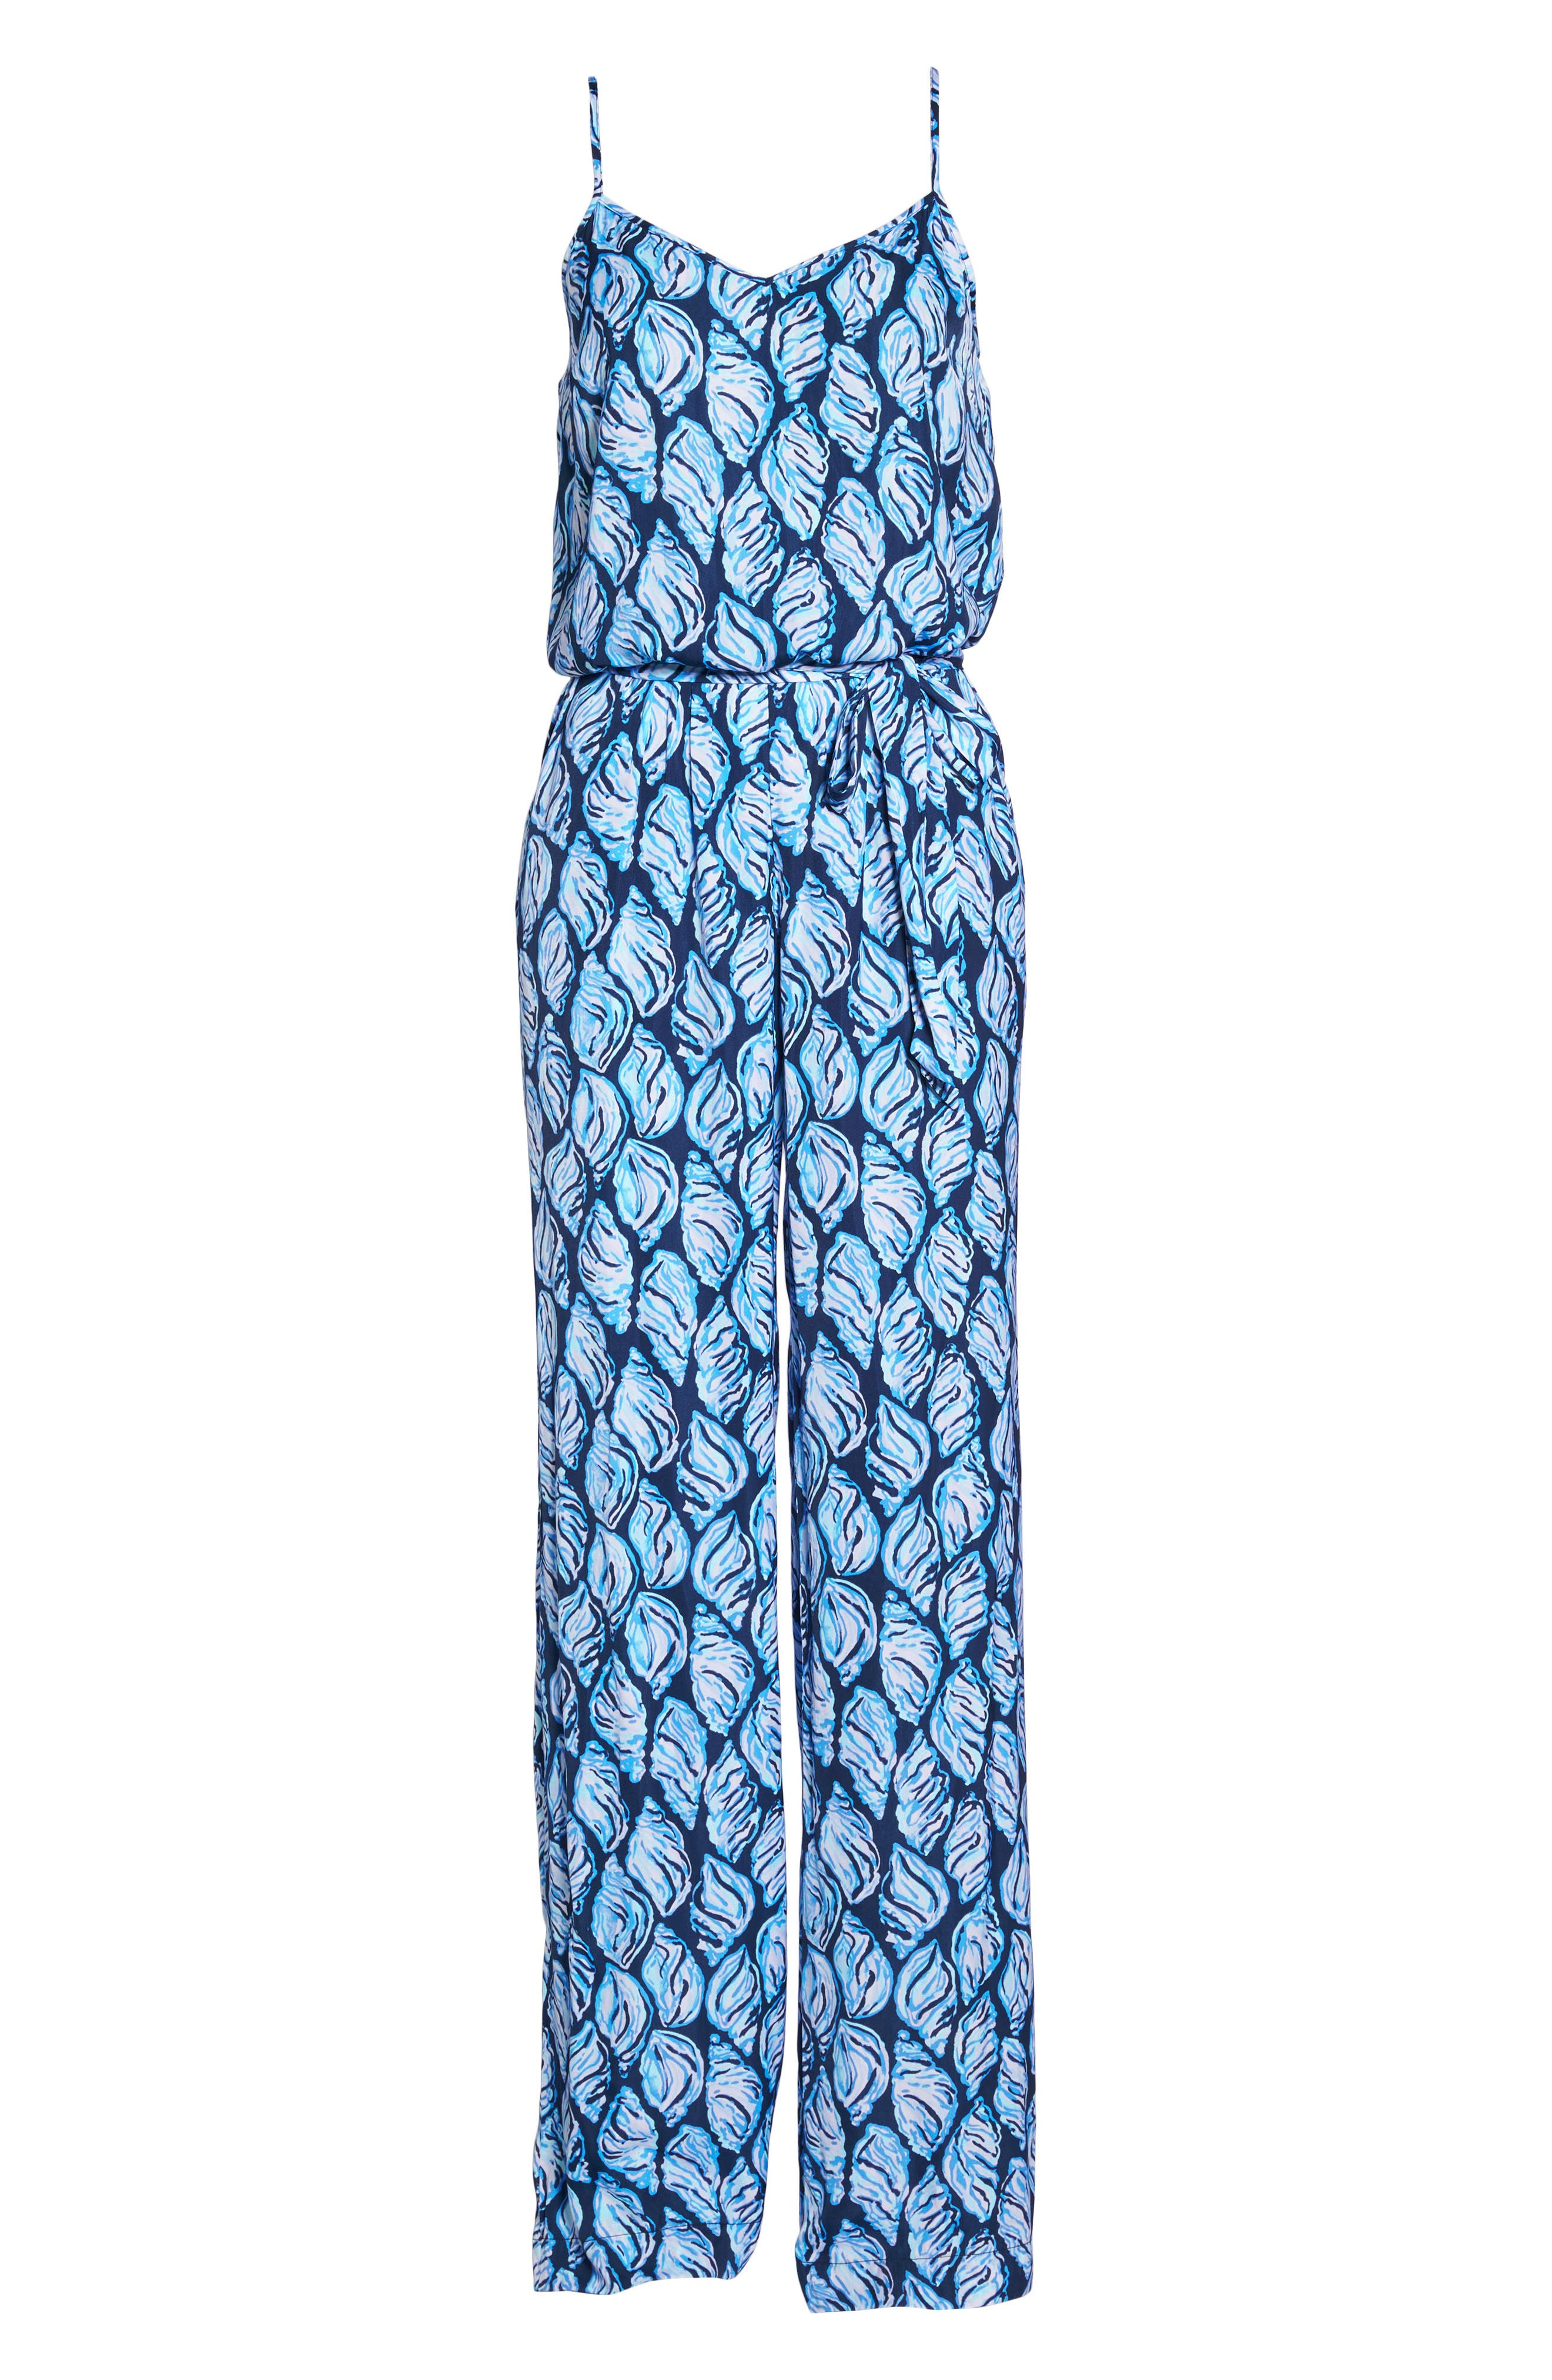 Lilly Pulizter<sup>®</sup> Dusk Sleeveless Jumpsuit,                             Alternate thumbnail 6, color,                             High Tide Drop In